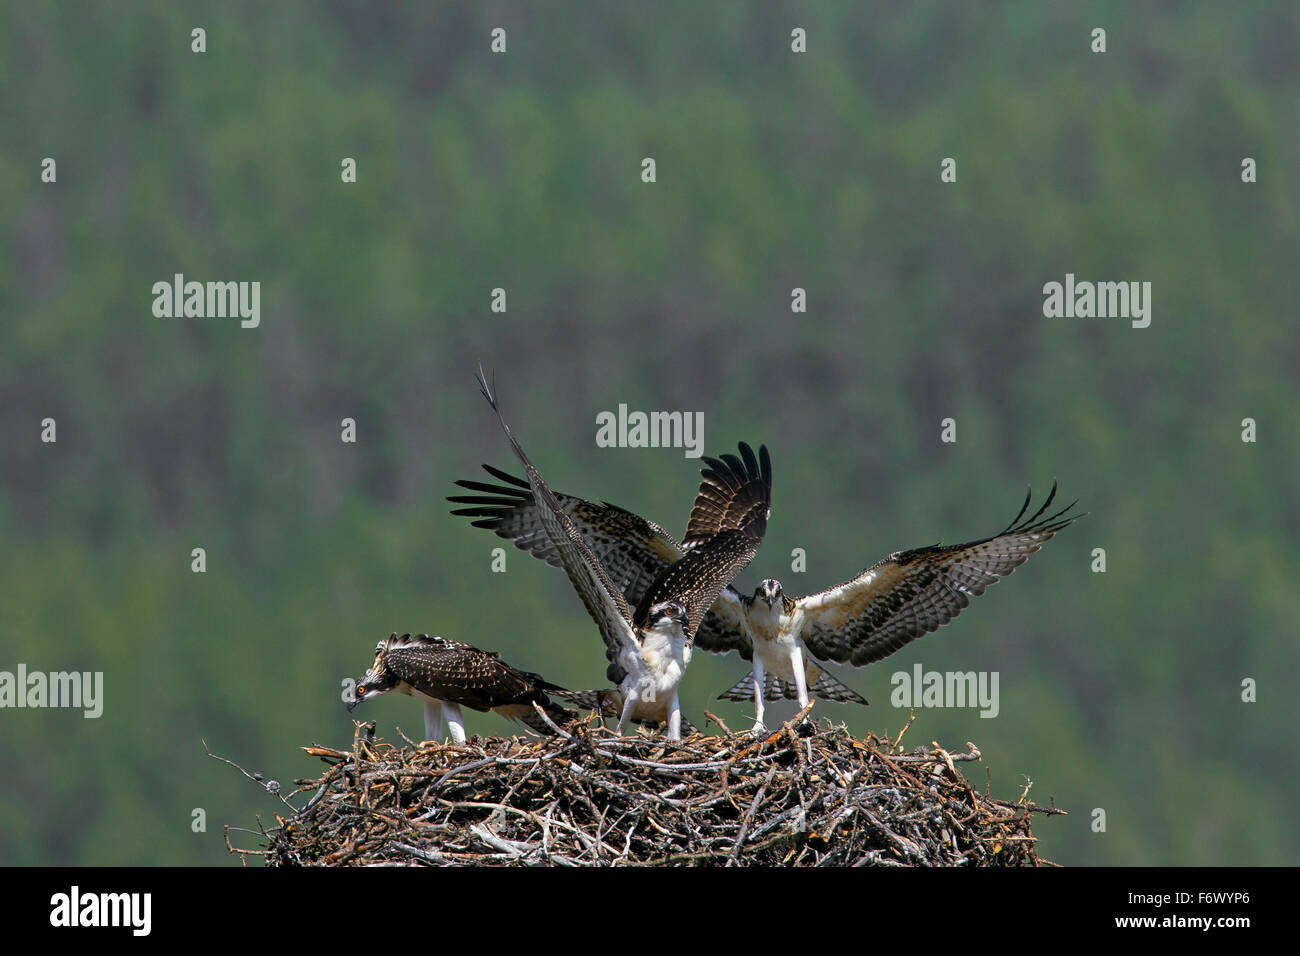 Osprey (Pandion haliaetus) adult bird with two young birds flapping their wings on nest in summer - Stock Image